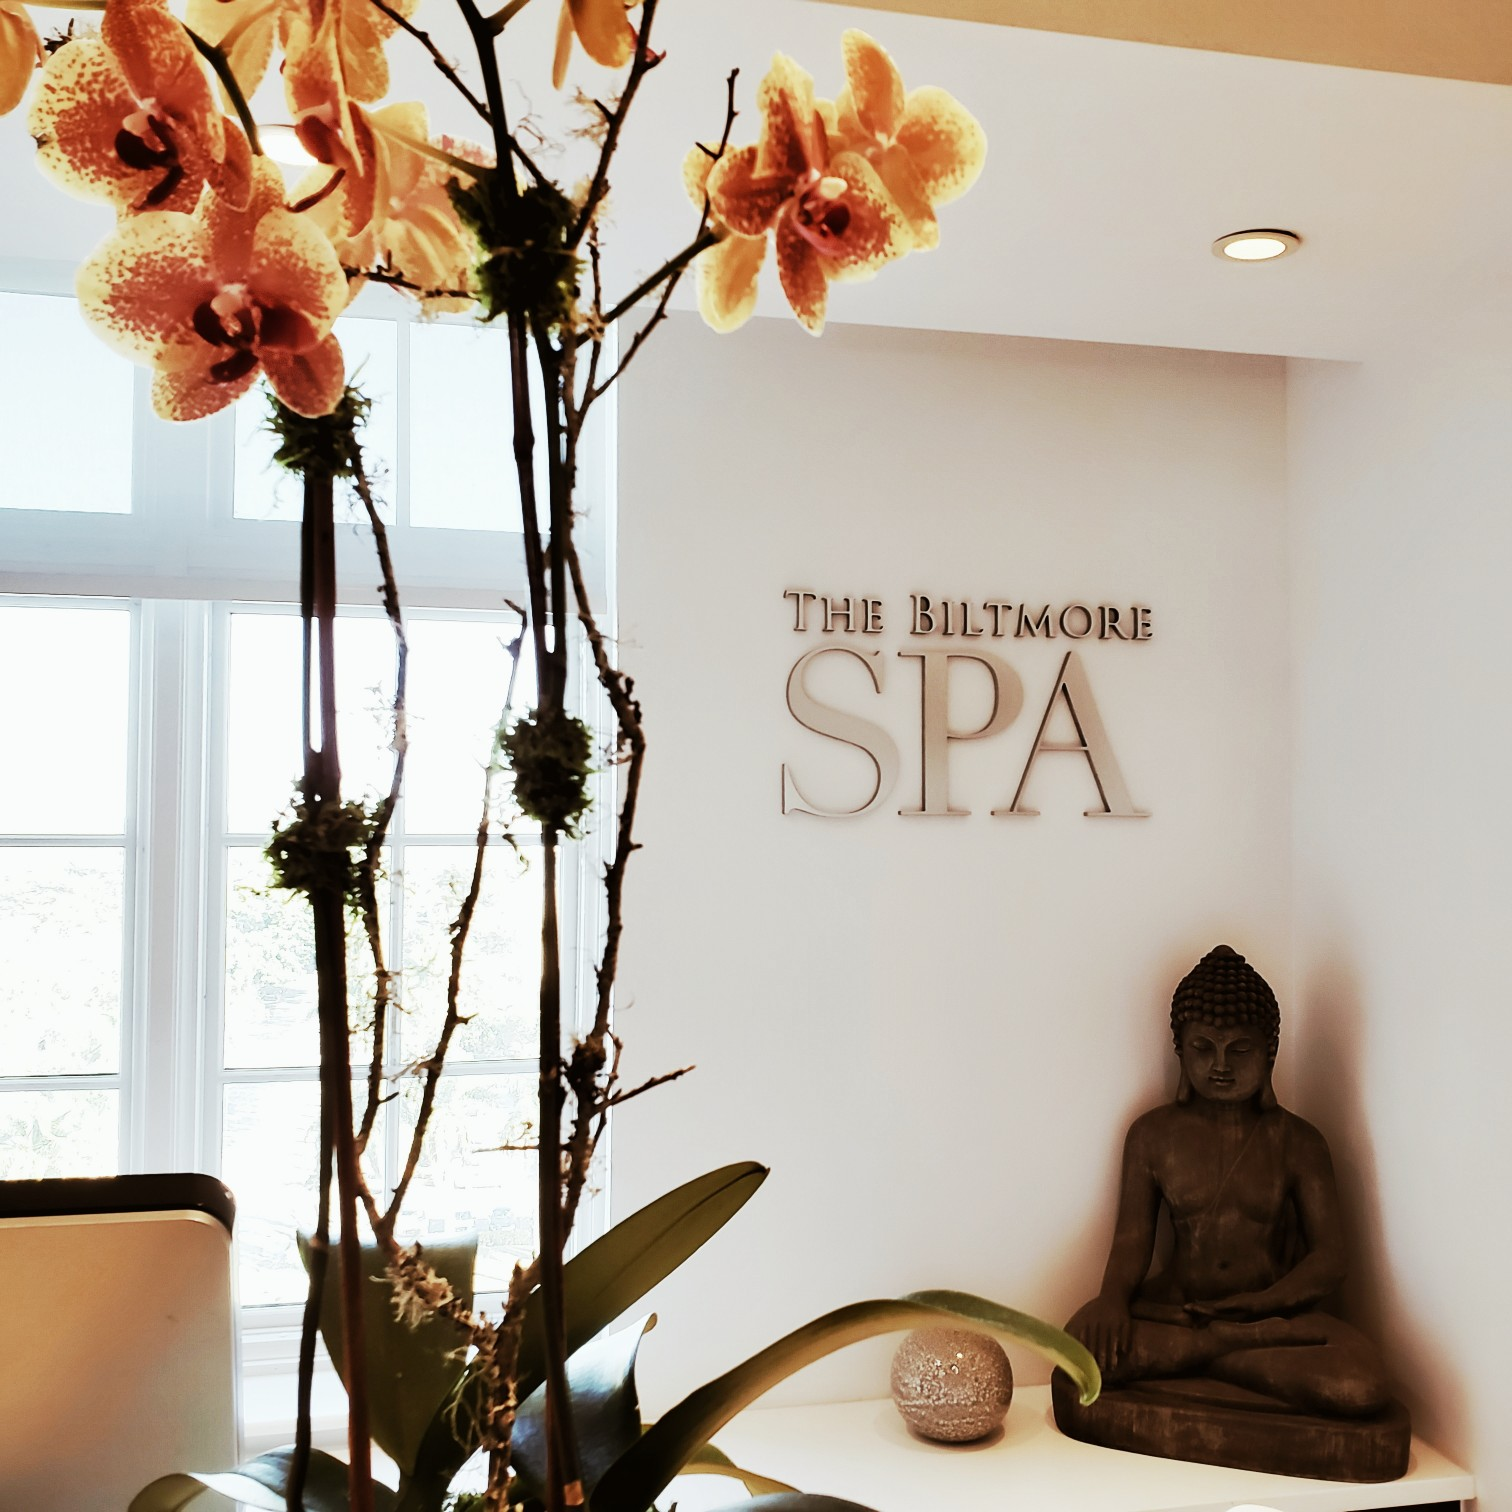 The Biltmore Spa Miami Blogger Review